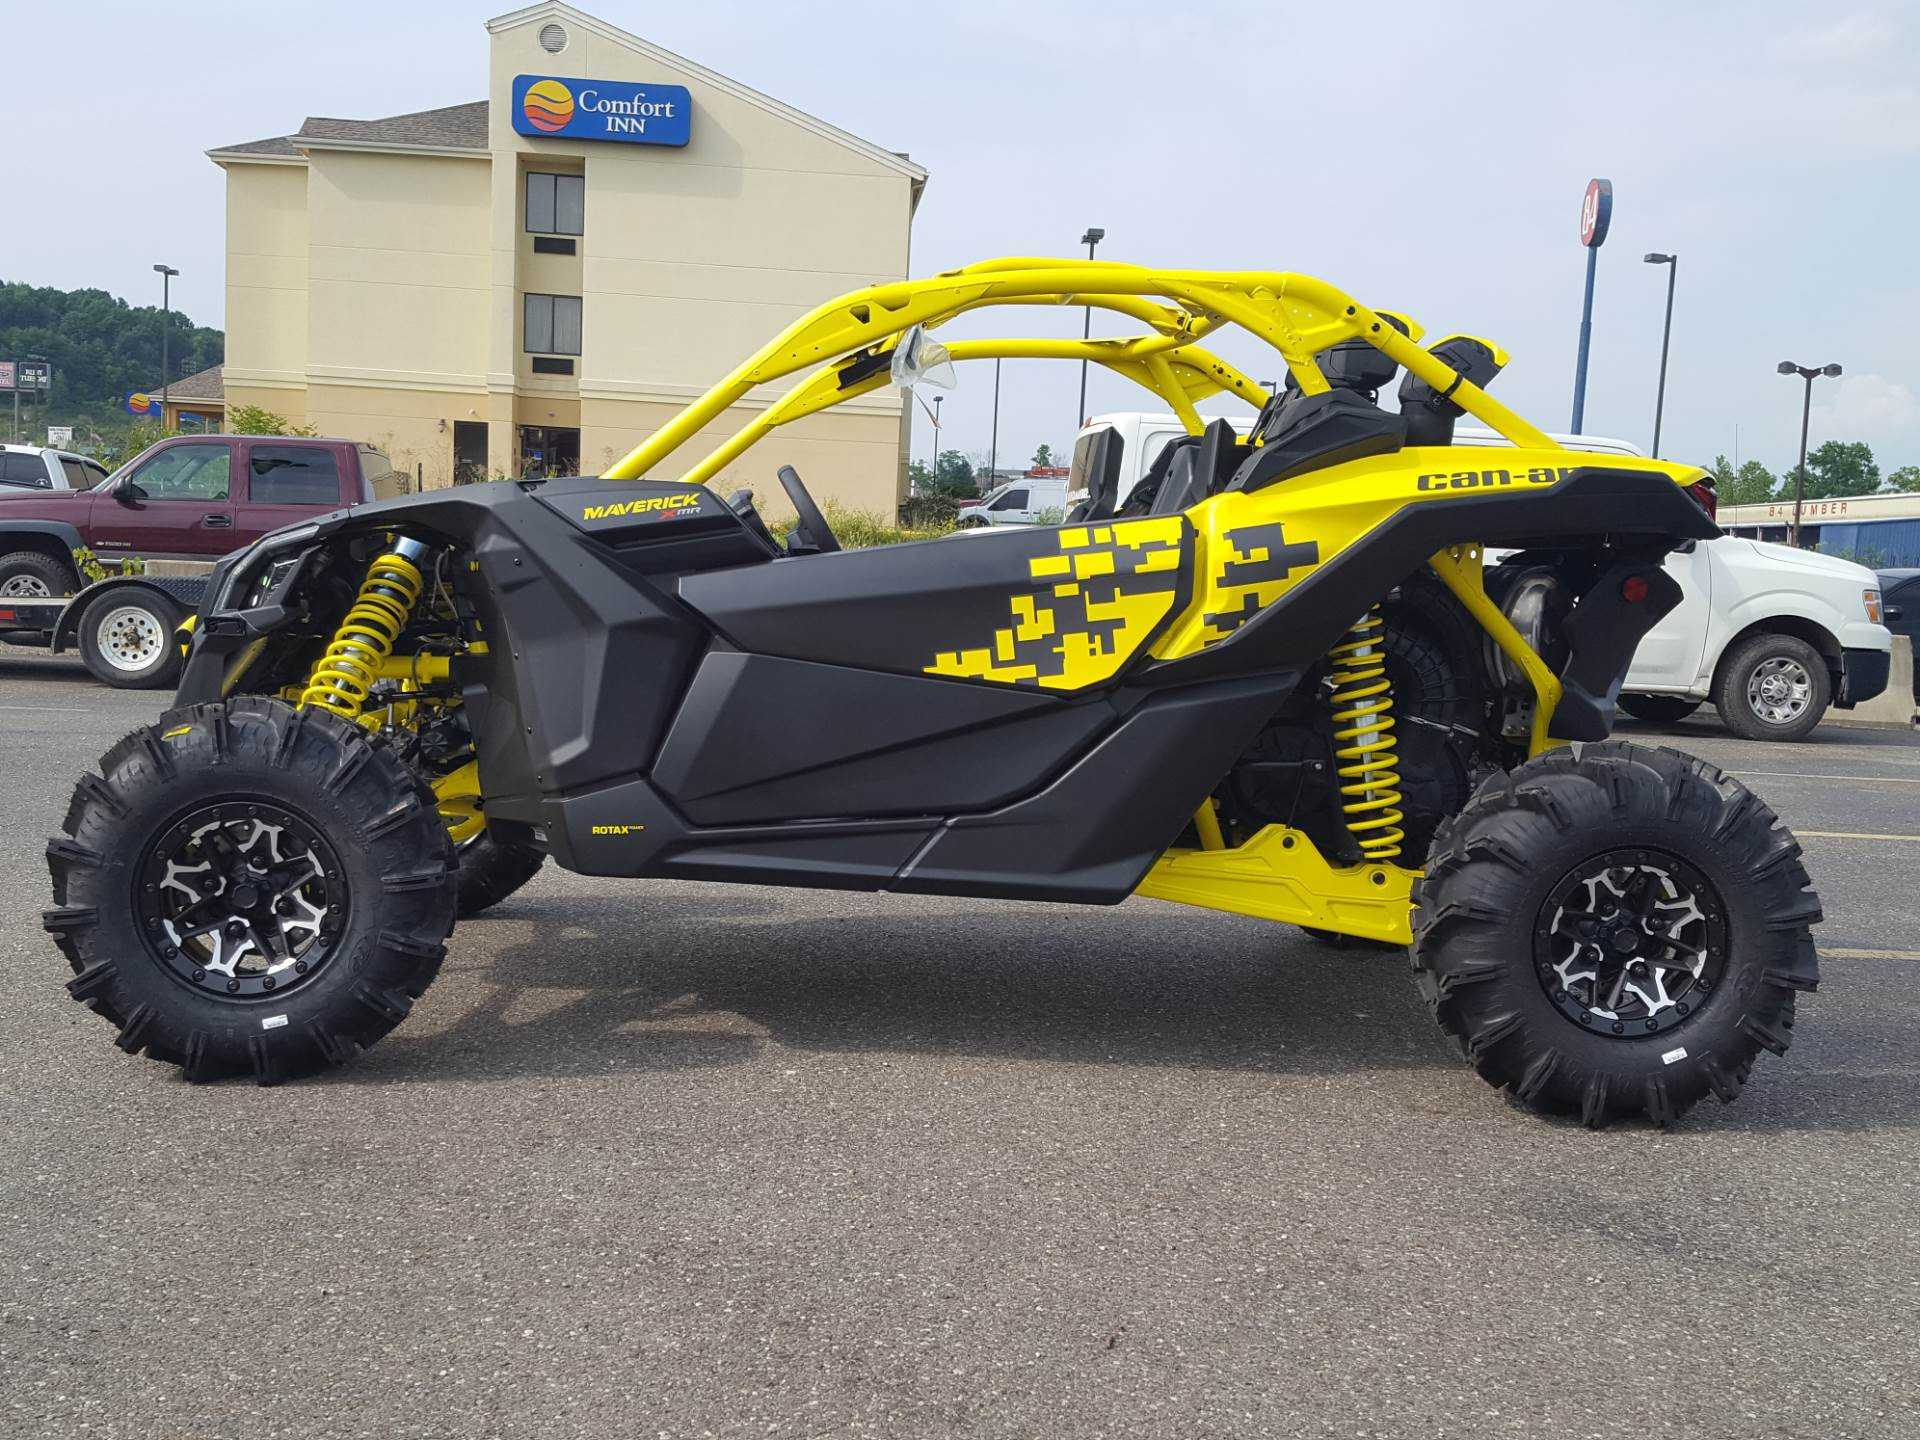 2019 Can-Am Maverick X3 X MR Turbo R in Cambridge, Ohio - Photo 1